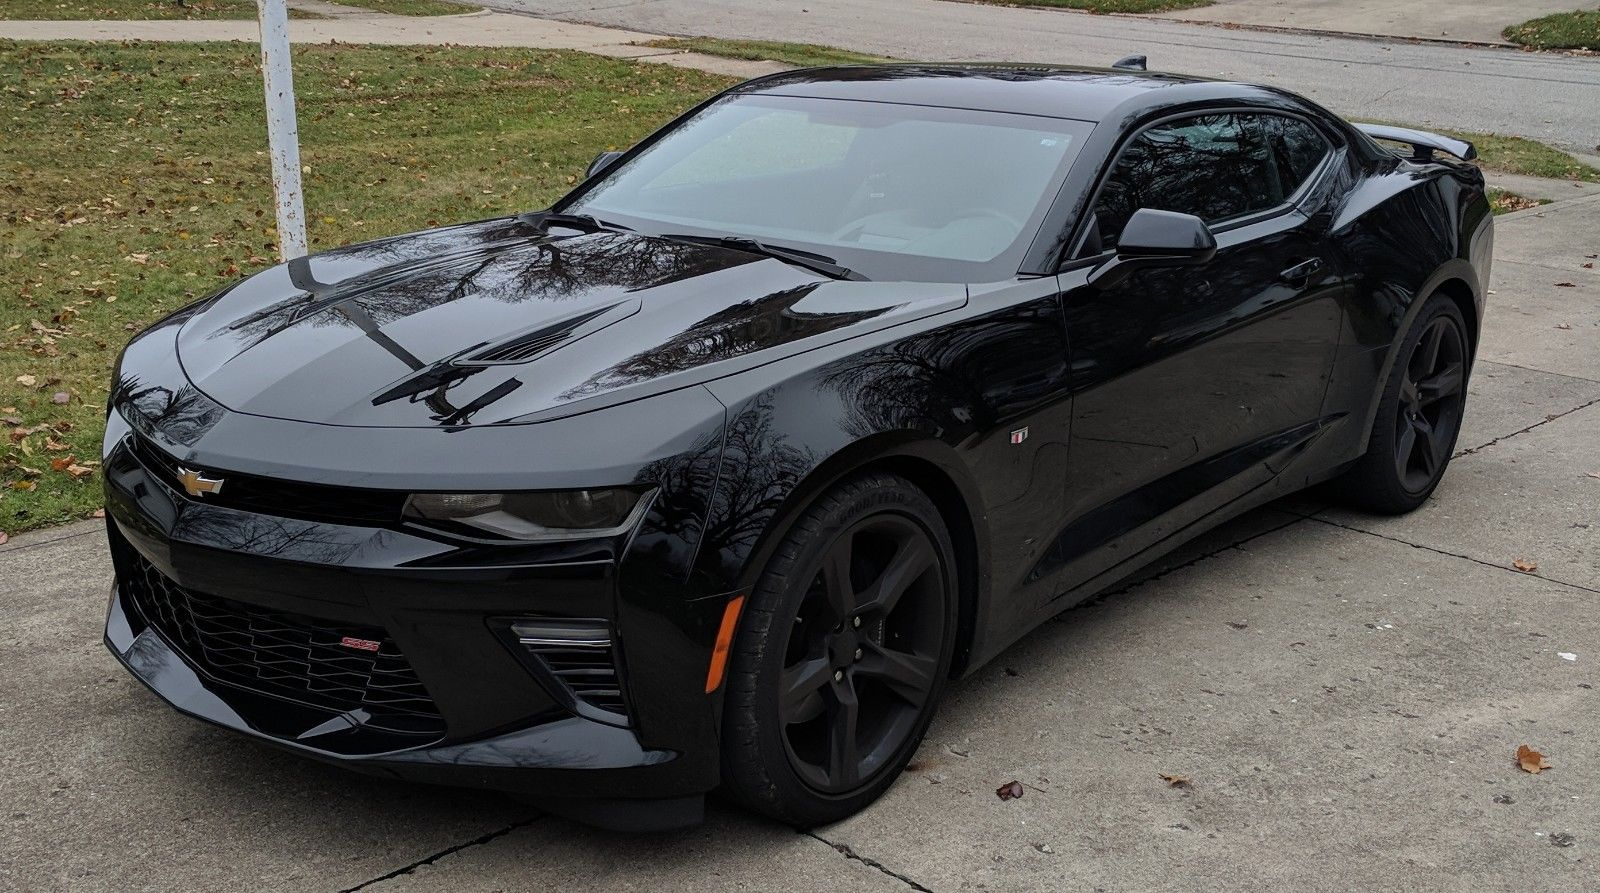 Amazing 2016 Chevrolet Camaro 2ss Black 6500 Miles Chevy V8 Auto Leather Sunroof 2017 2018